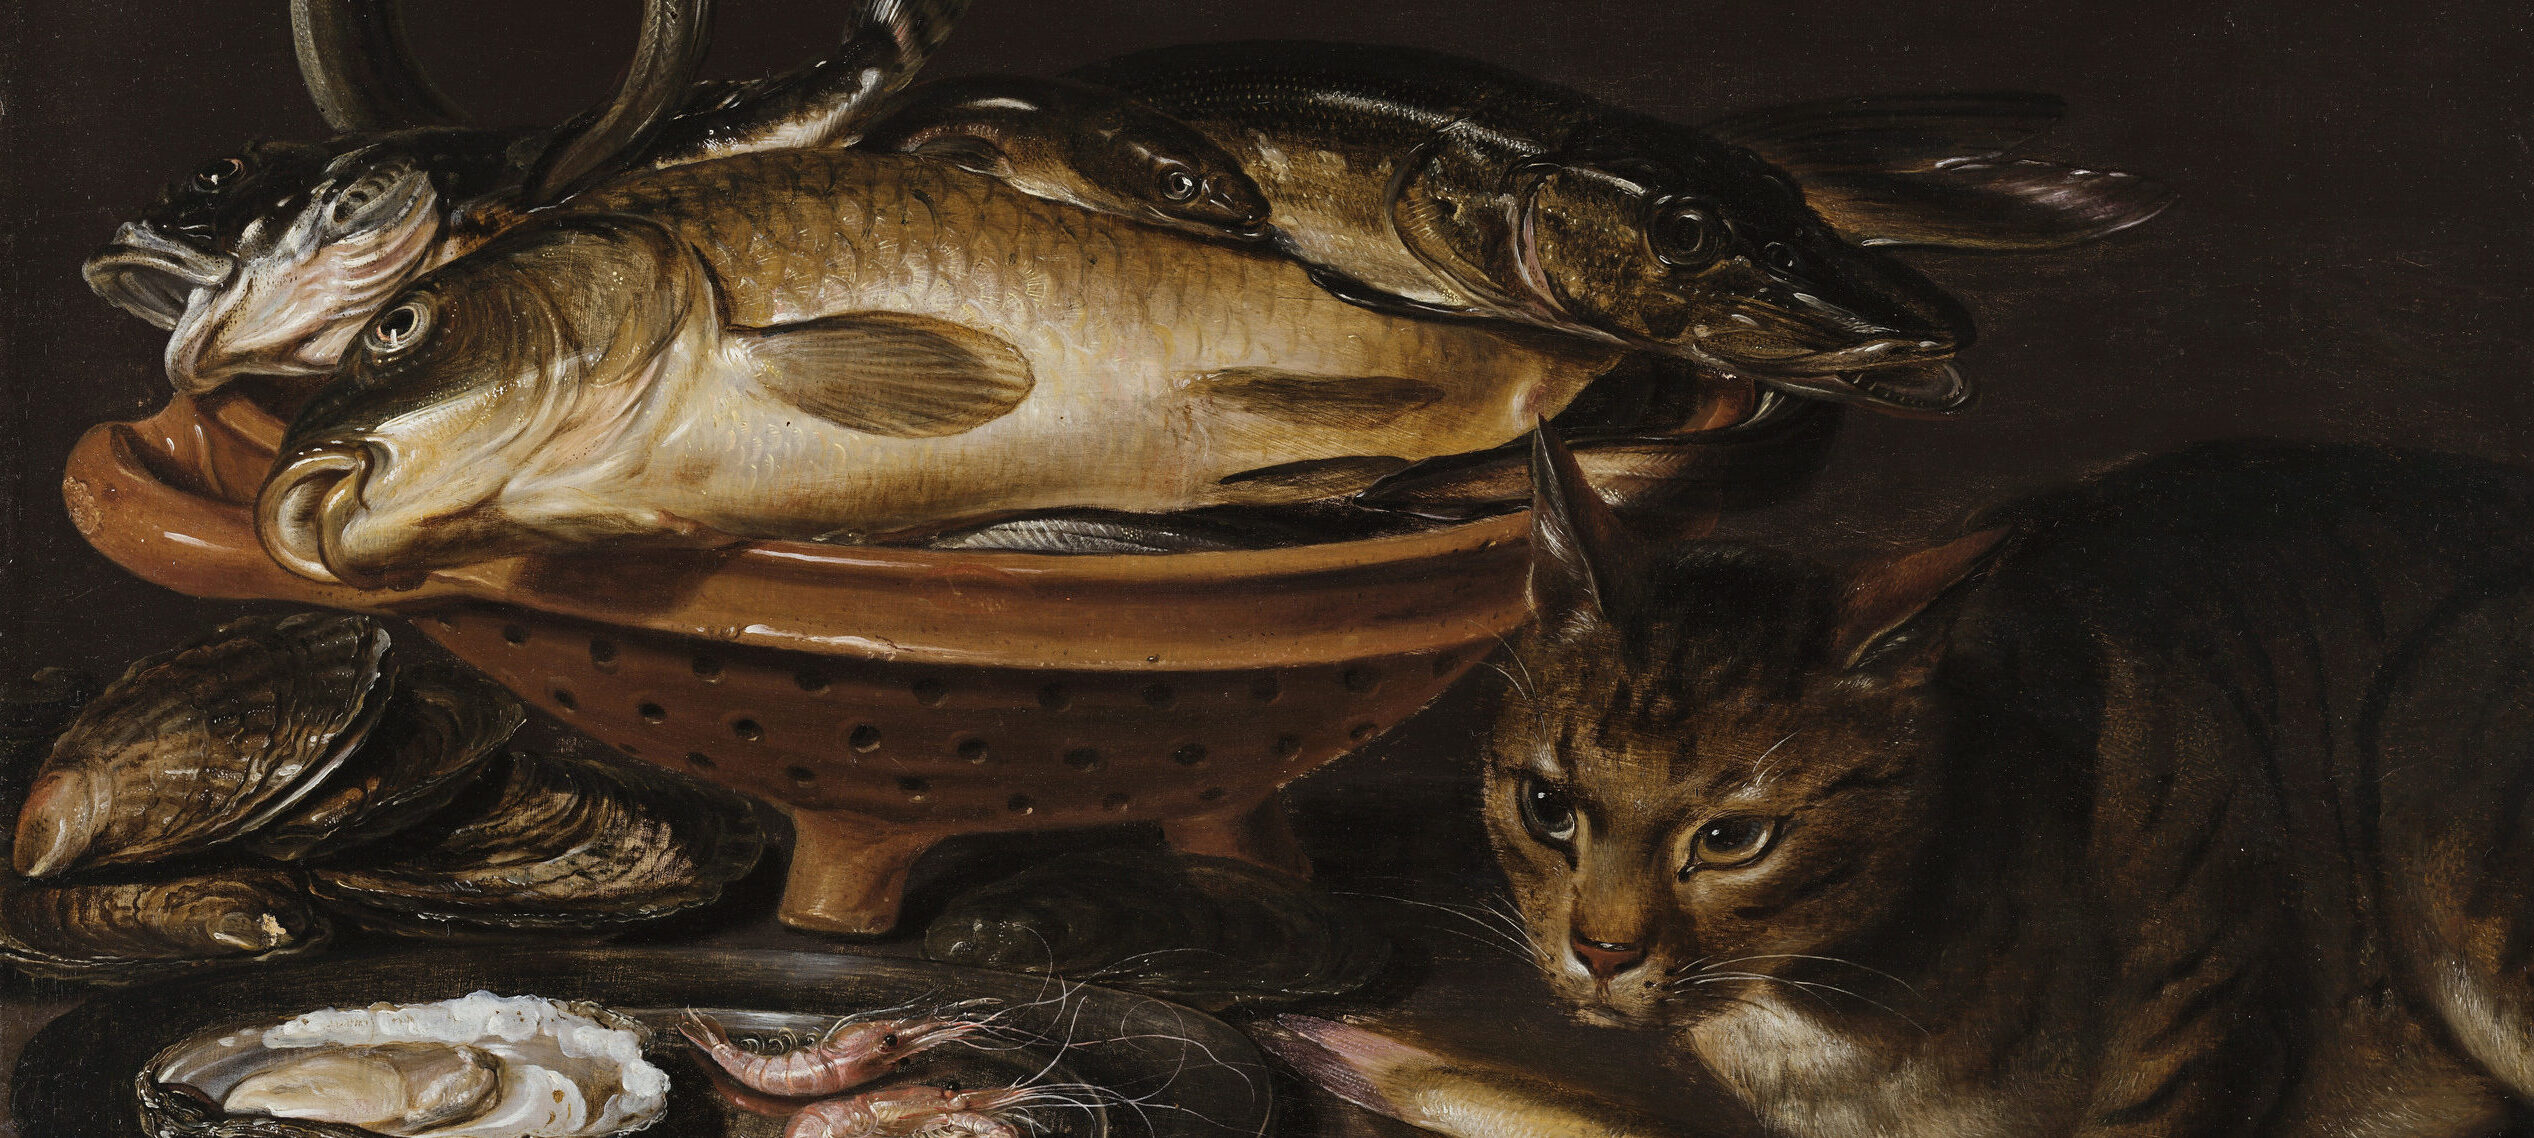 A still life painting featuring a bowl of dead fish, silver platter with an oyster and shrimp, and a cat with a fish in its paws sitting next to it.